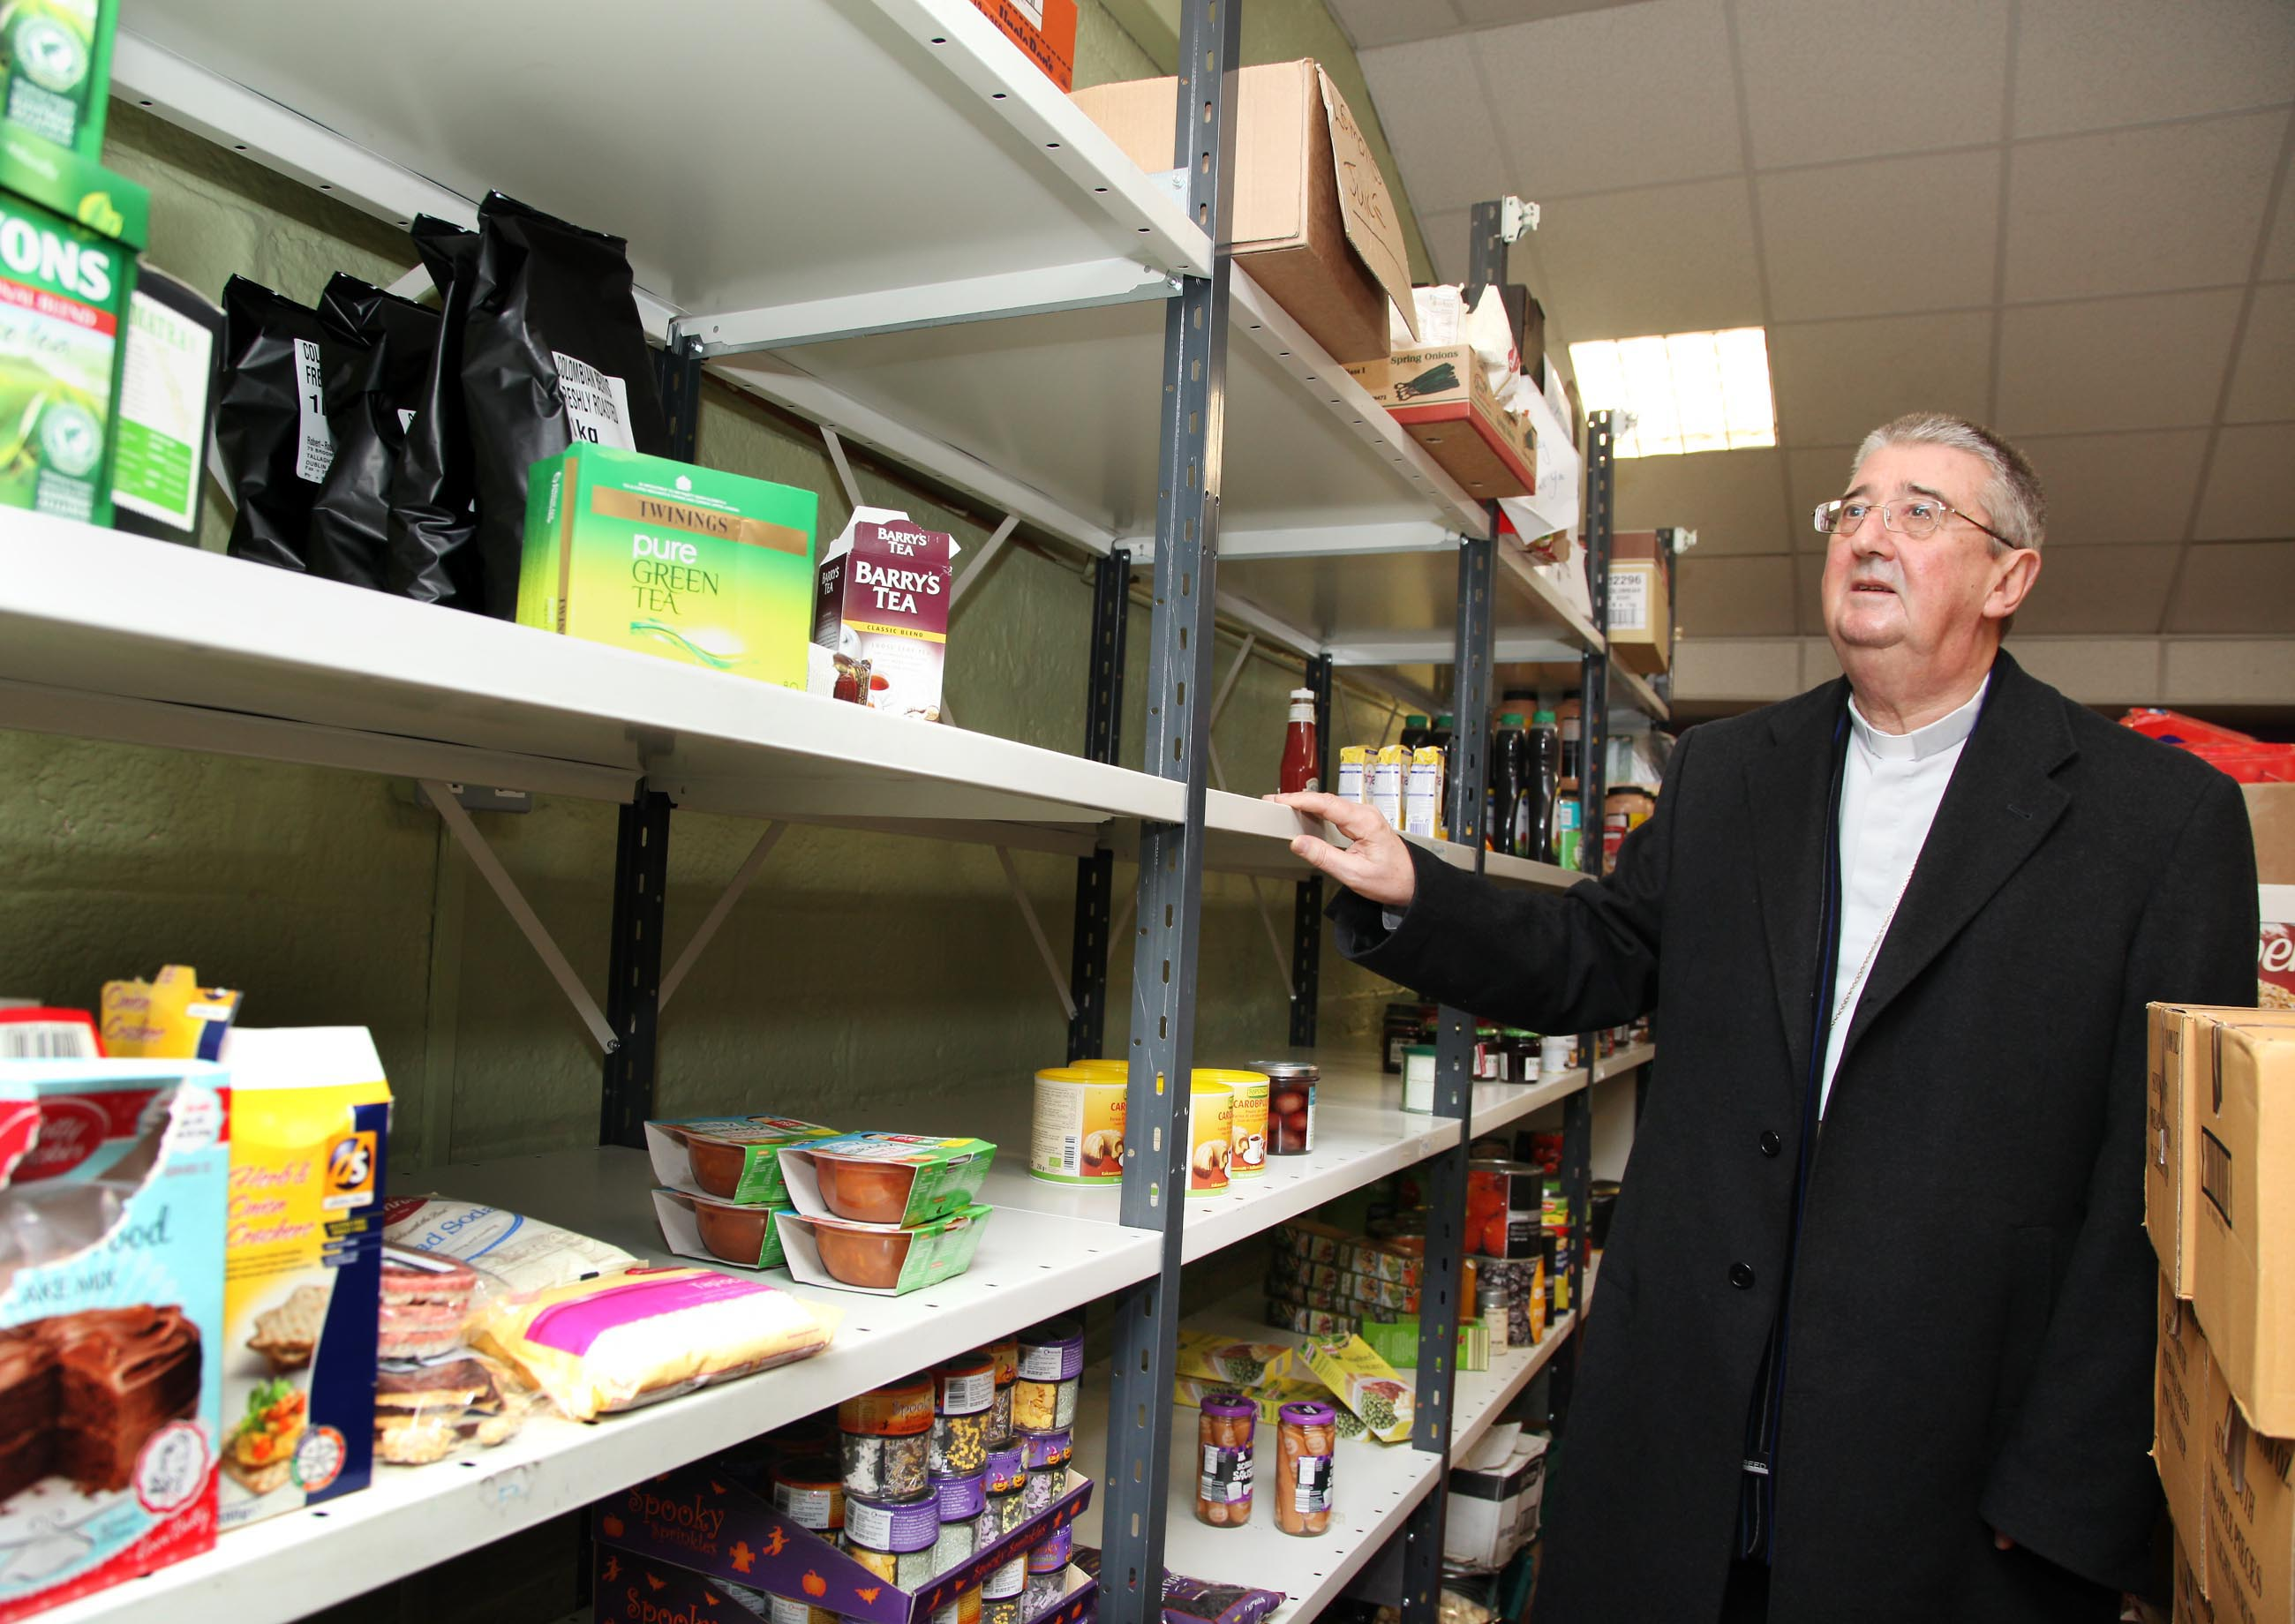 http://www.catholicireland.net/wp-content/uploads/2014/12/ARCHBISHOP-Diarmuid-Martin-LAUNCHES-FOOD-APPEAL-1-1.jpg